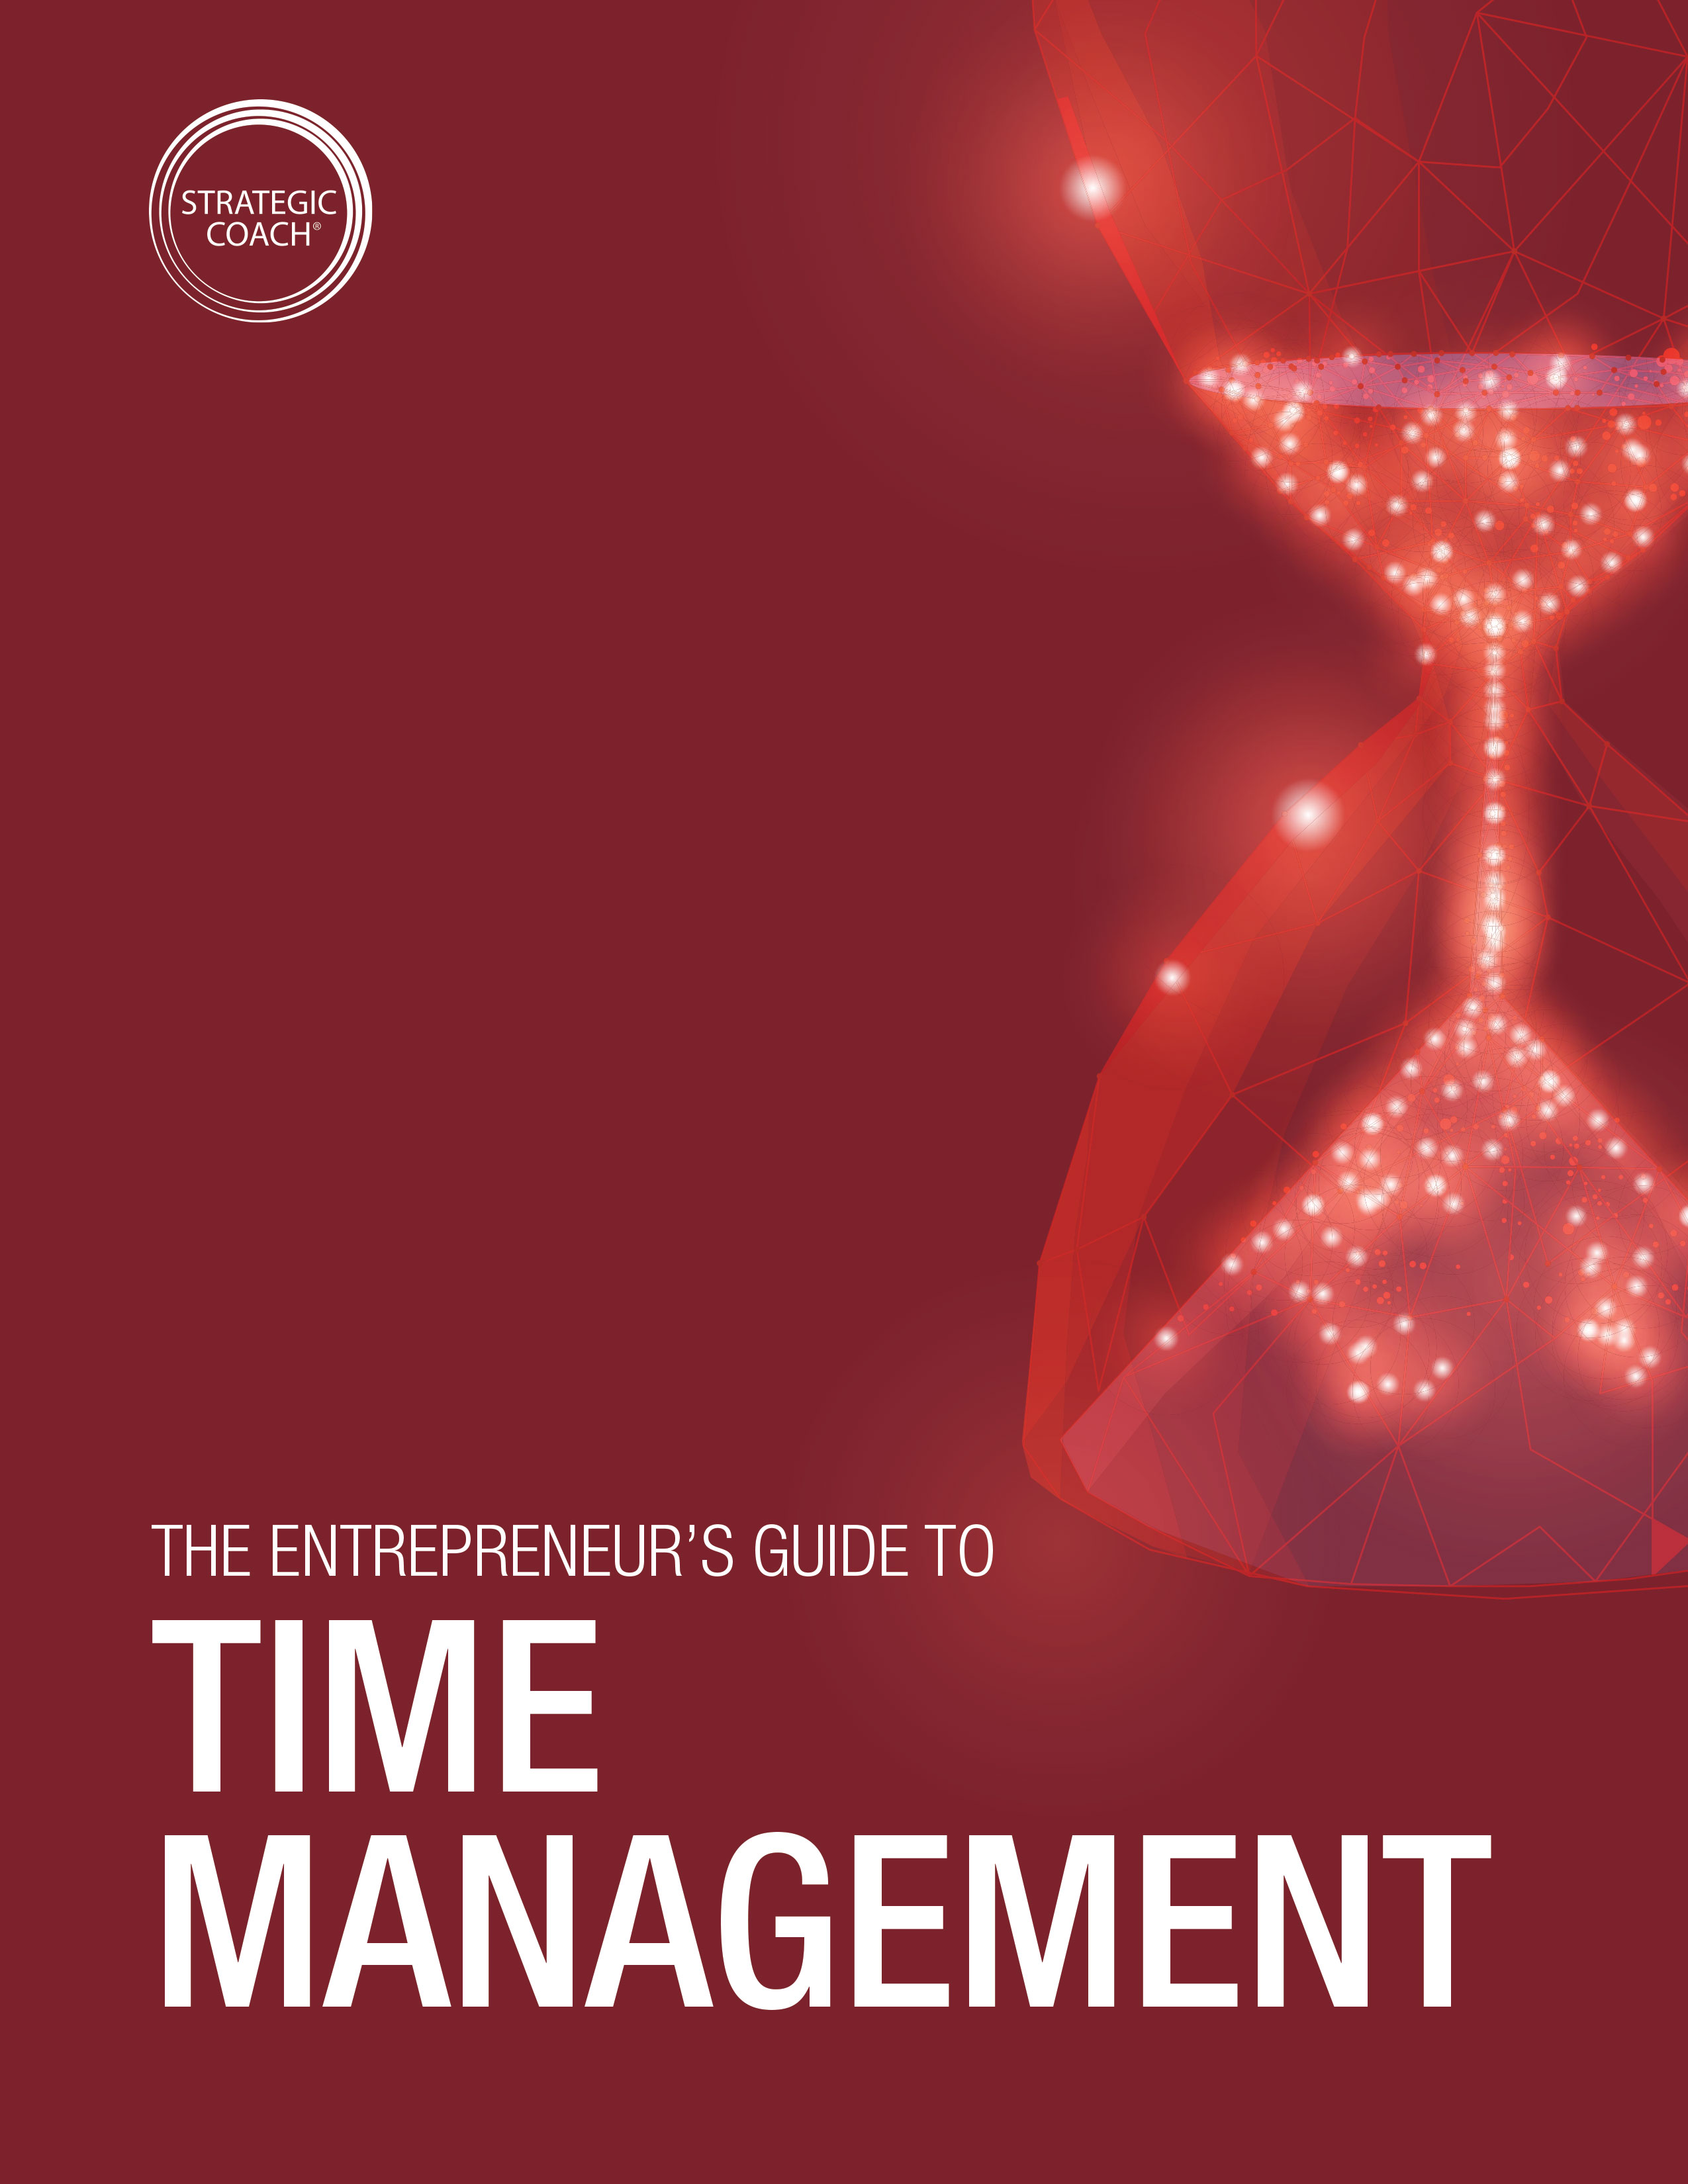 The Entrepreneur's Guide To Time Management